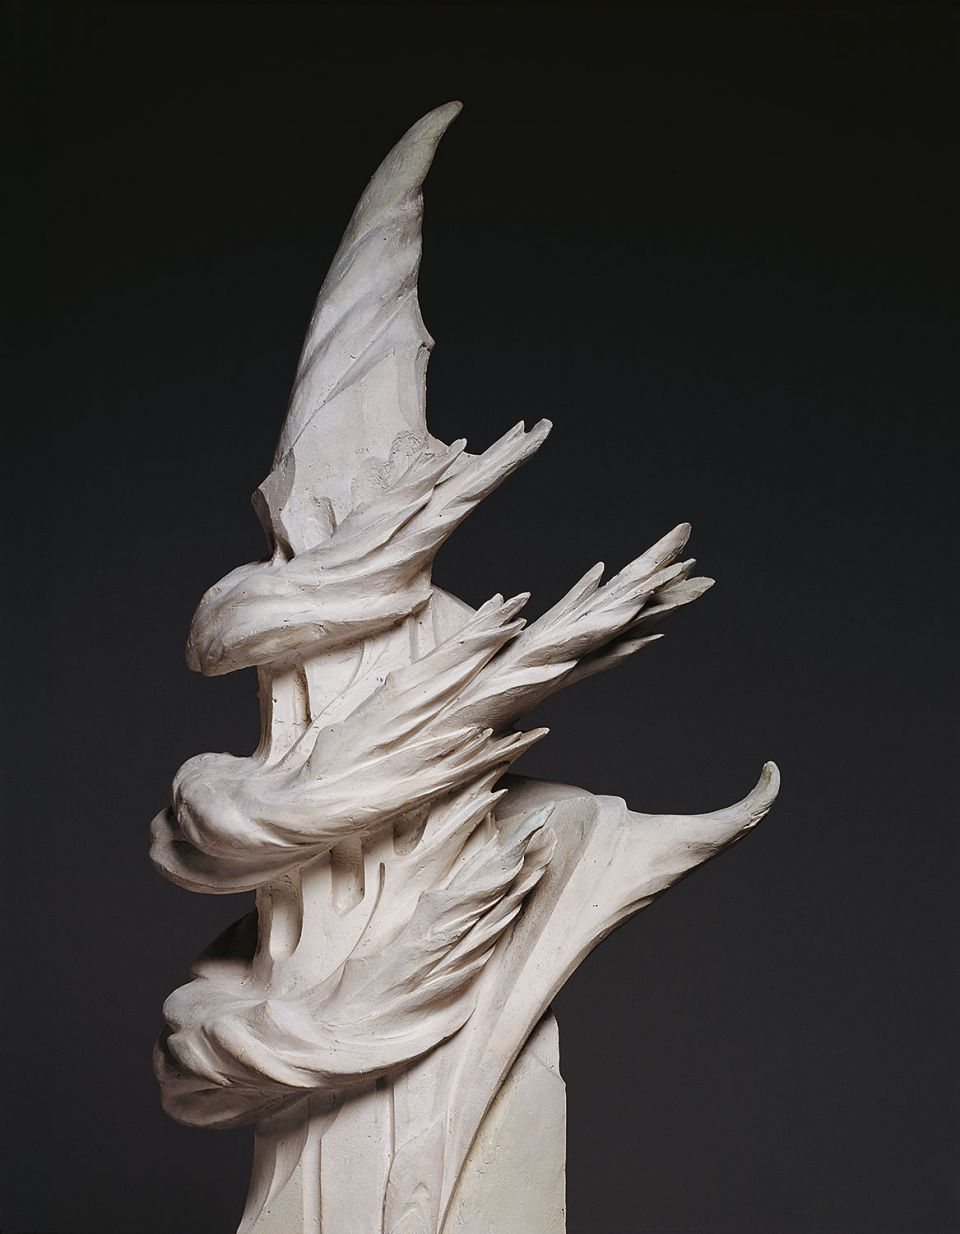 Hermann Obrist, detail of 'Bewegung' ('Movement') (1914, plaster)